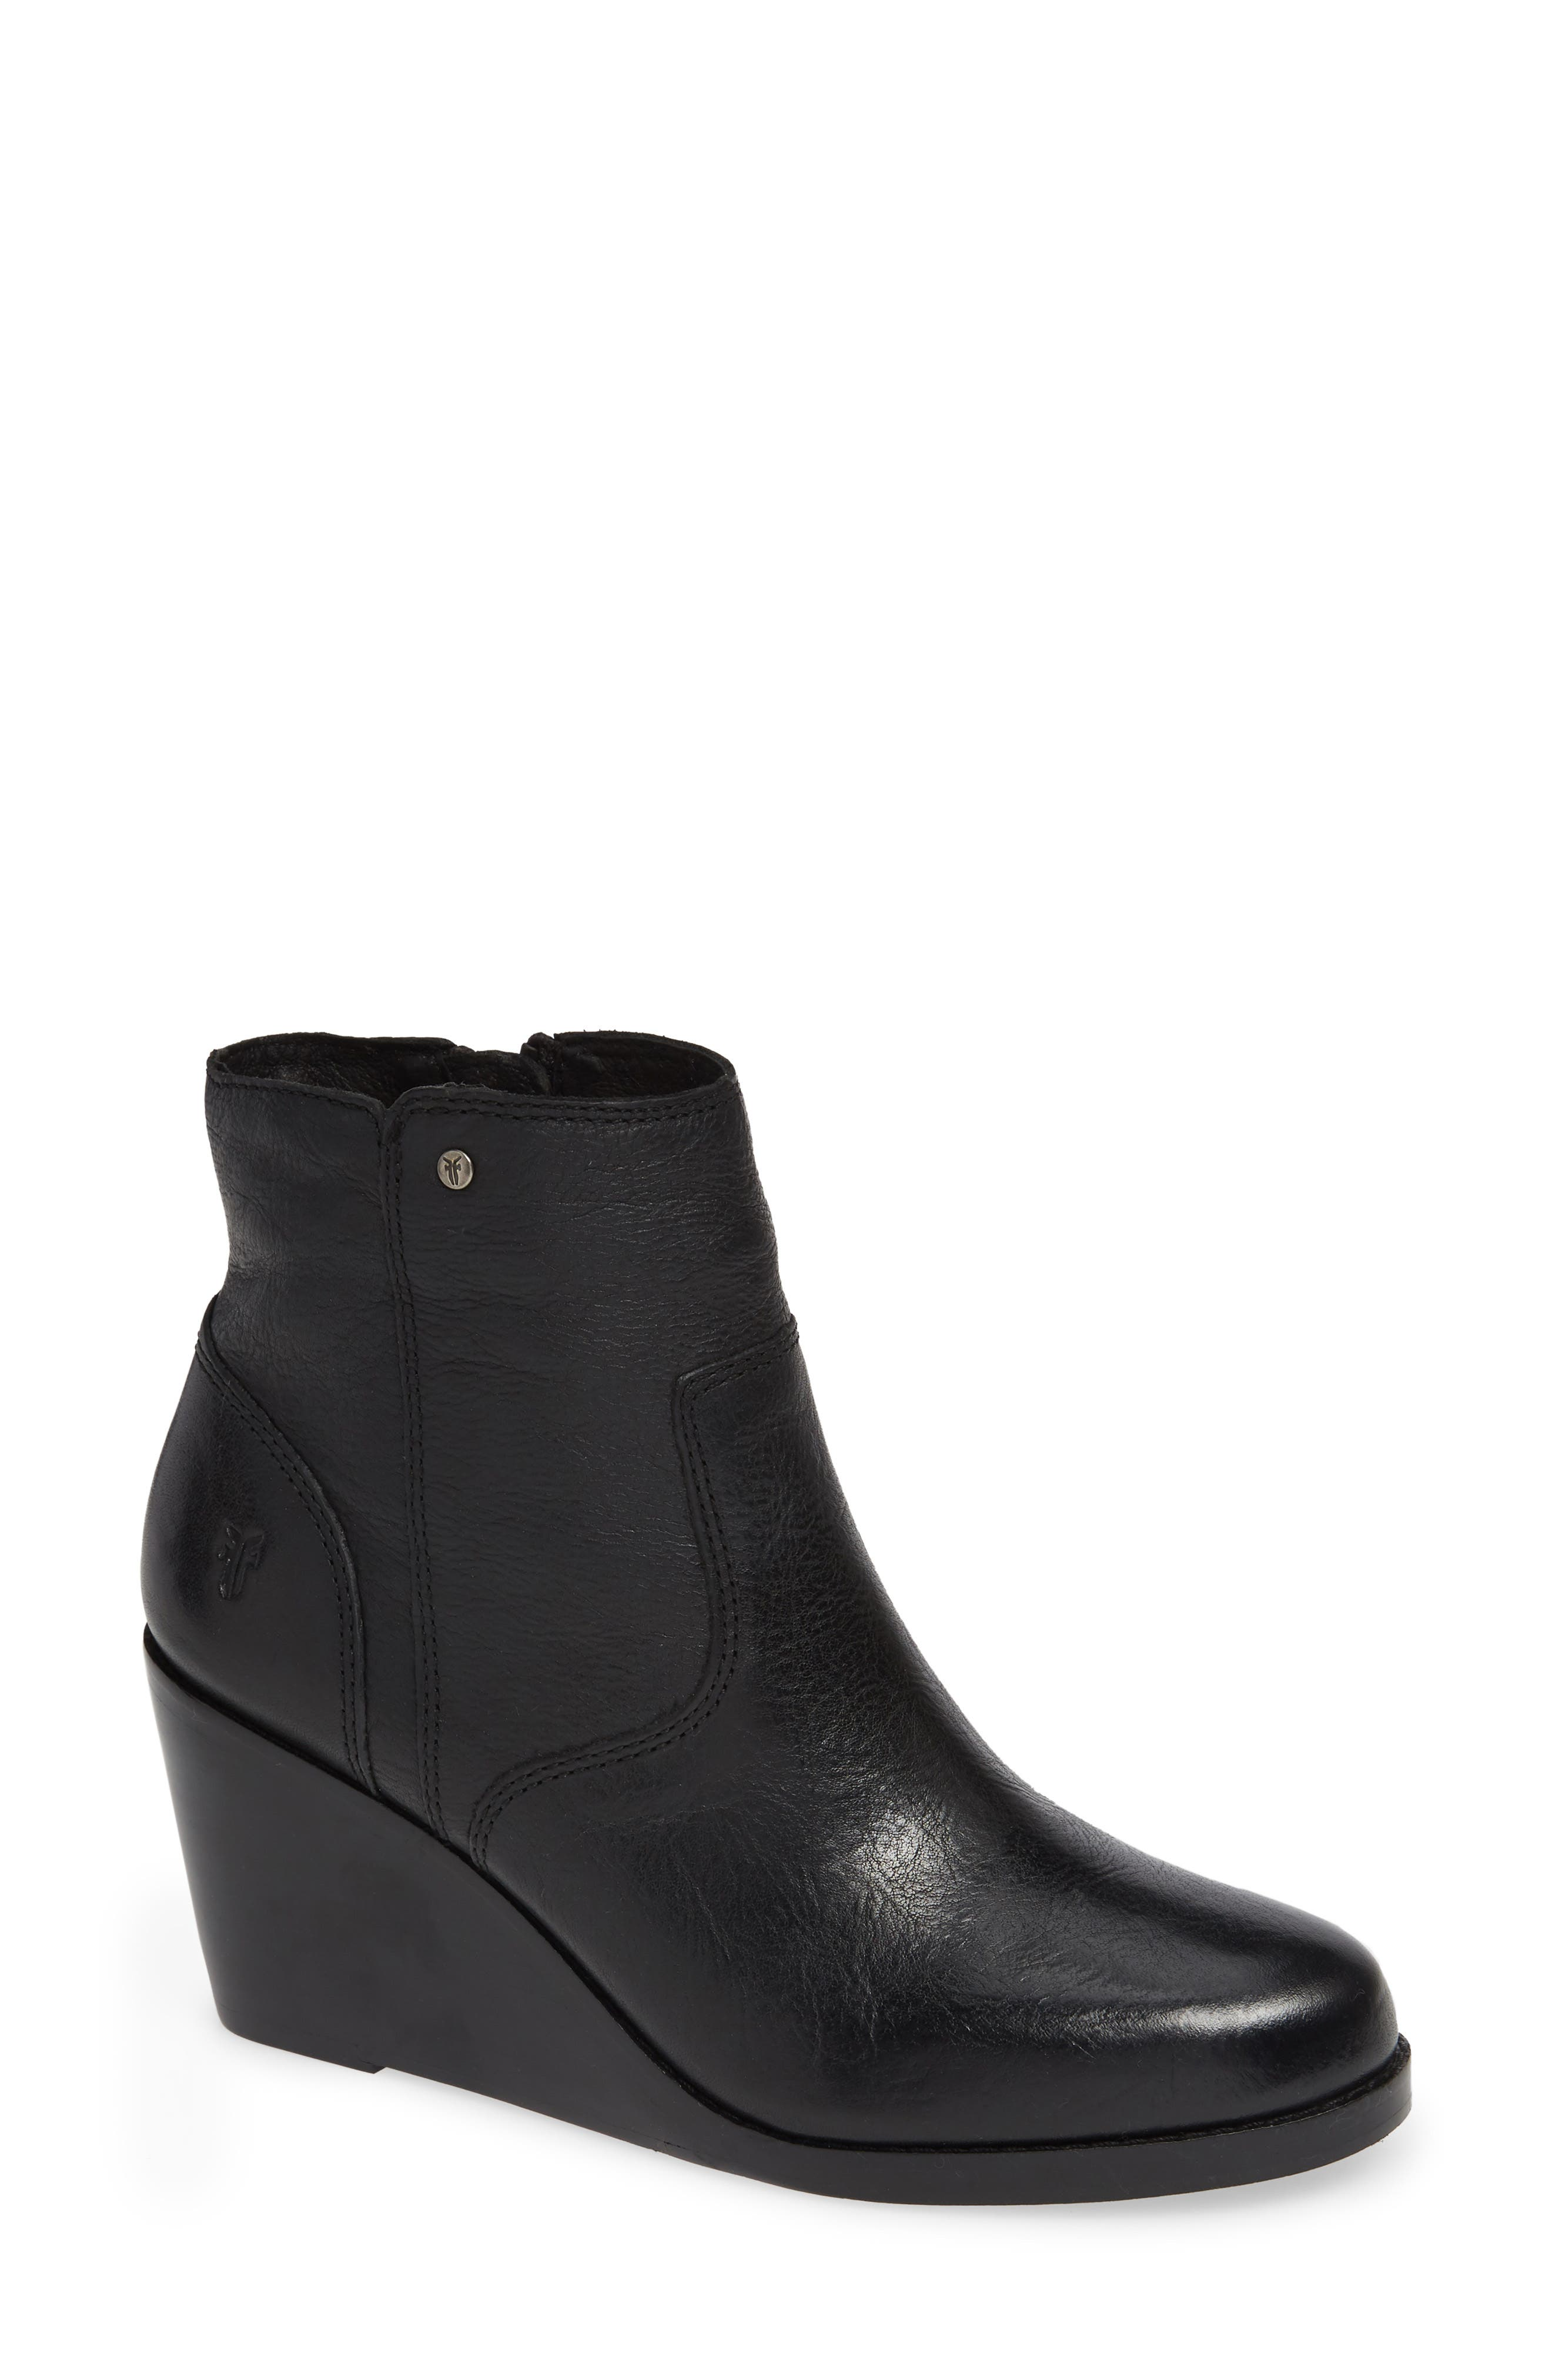 Emma Wedge Bootie,                         Main,                         color, BLACK LEATHER